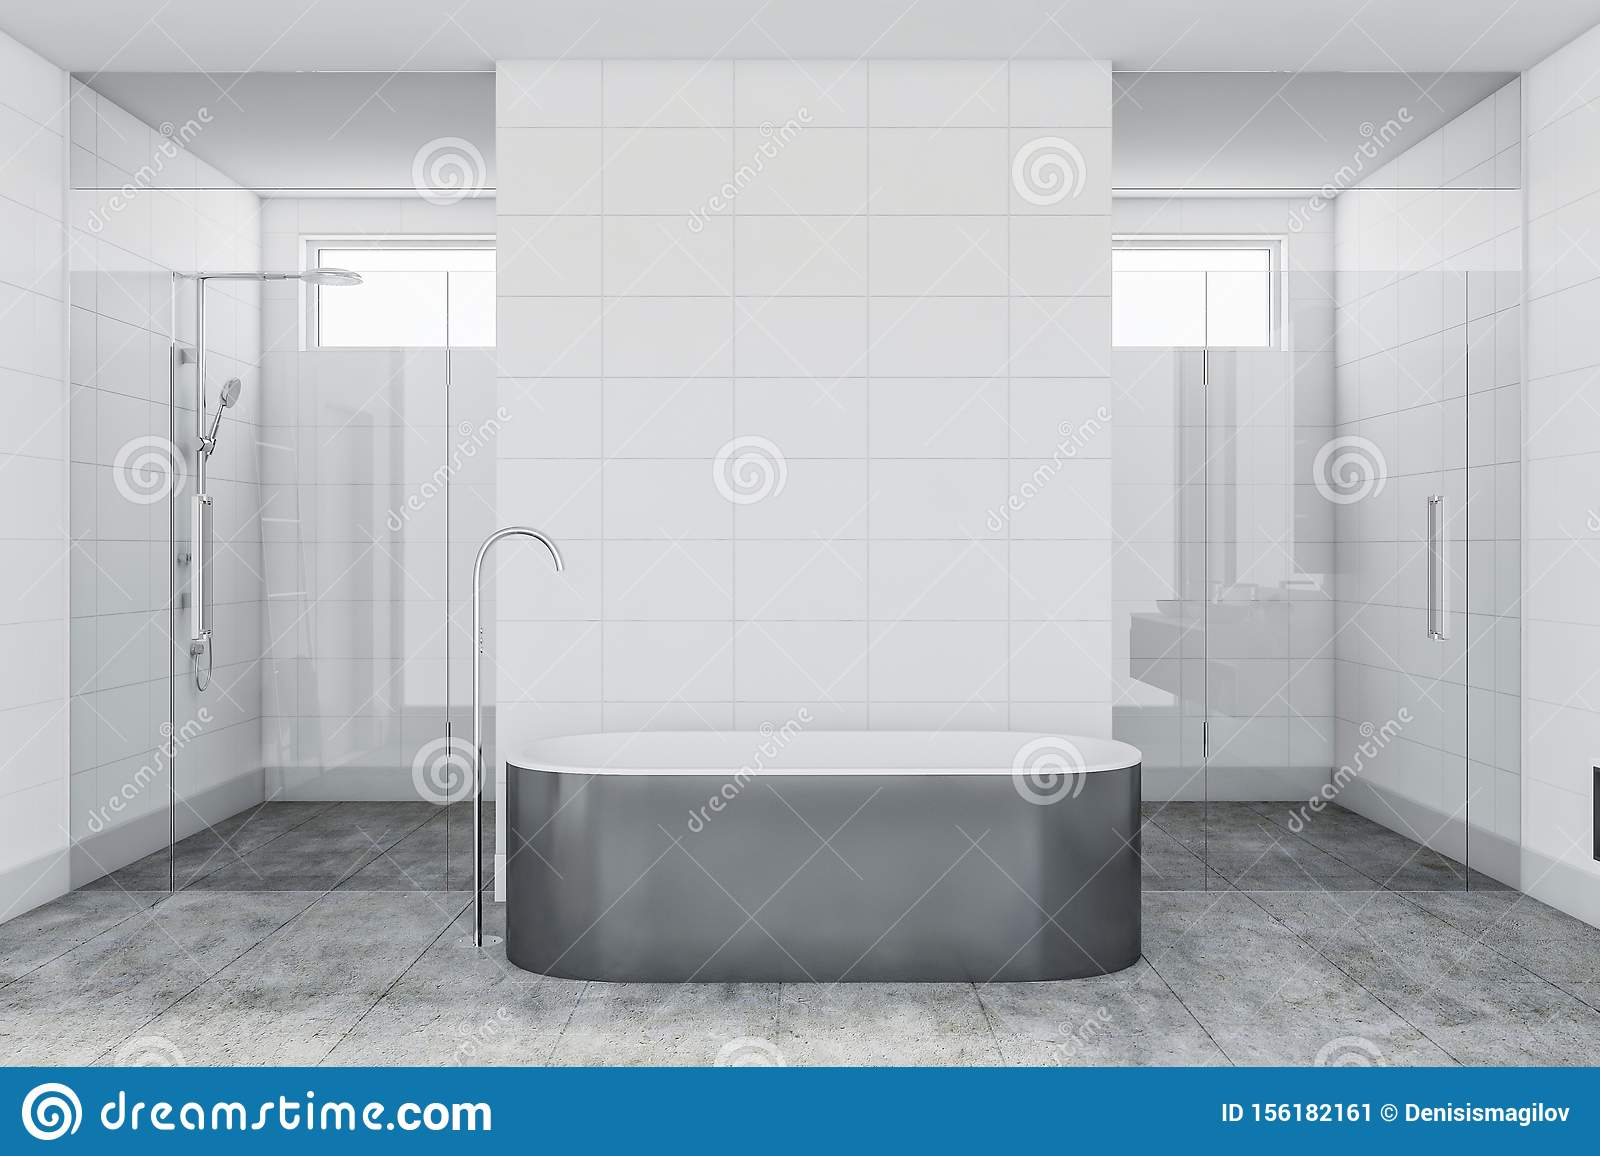 White Tile Bathroom Interior With Tub And Shower Stock